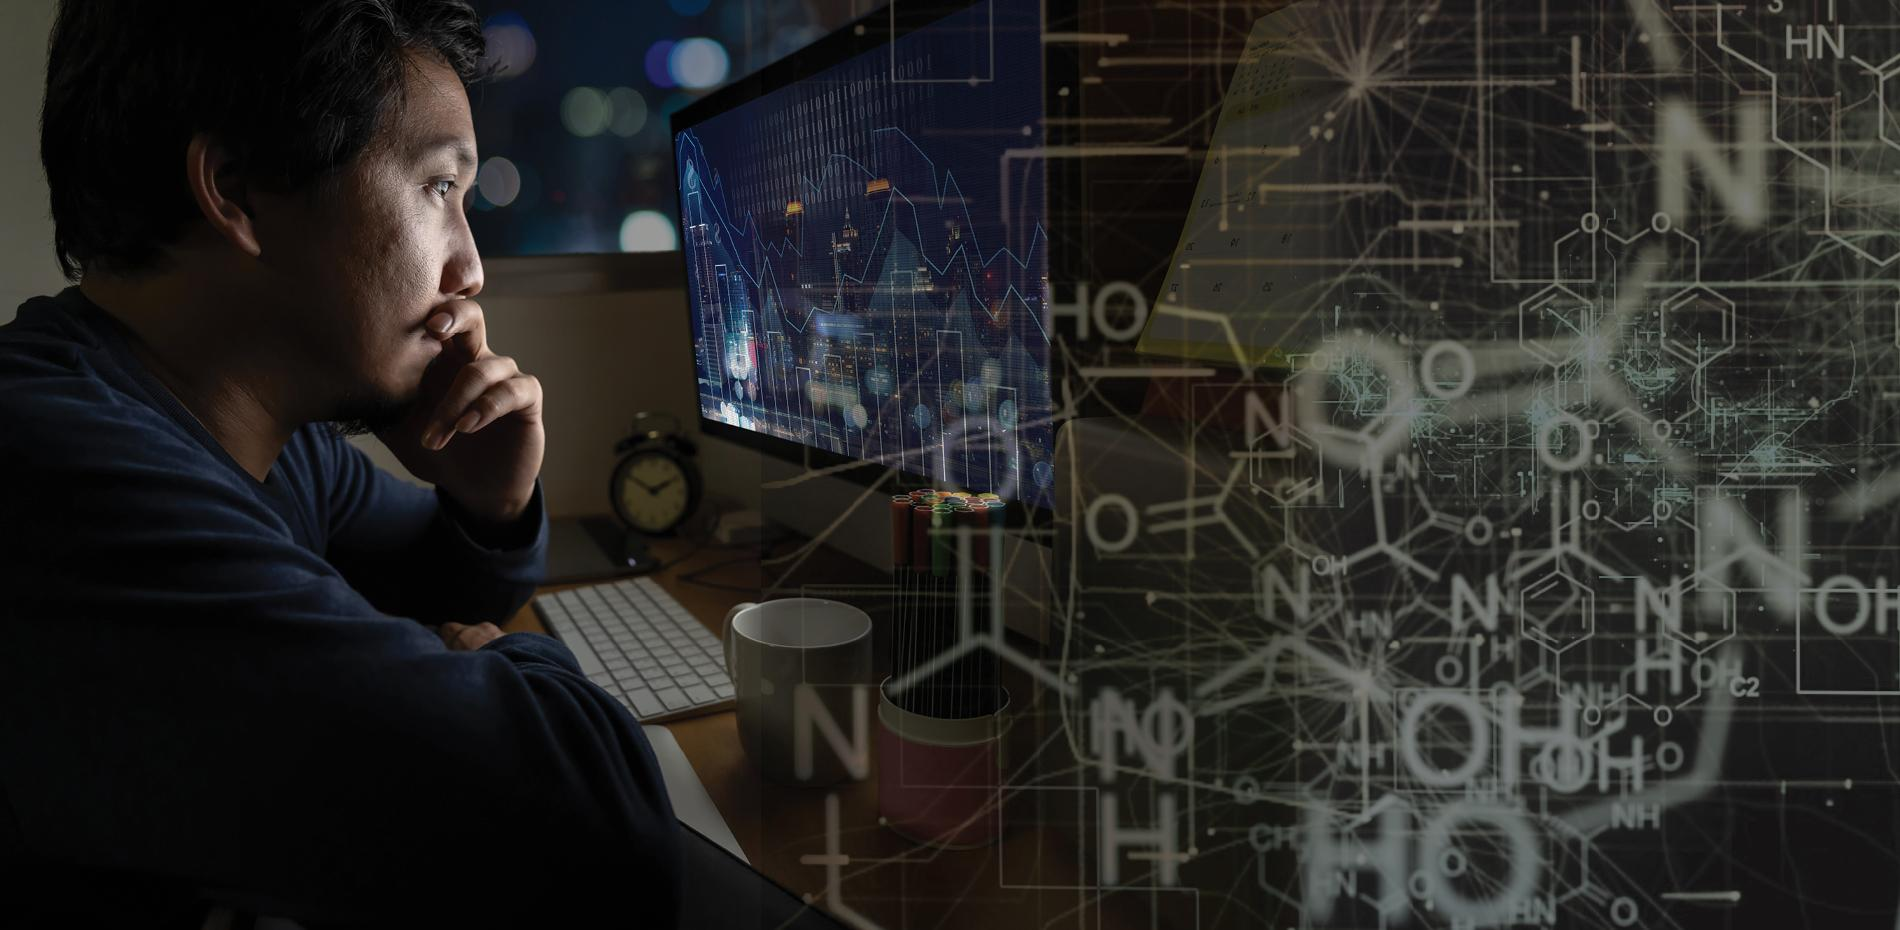 Adult male looking at computer screen with an overlay of chemical engineering formulas across the screen.